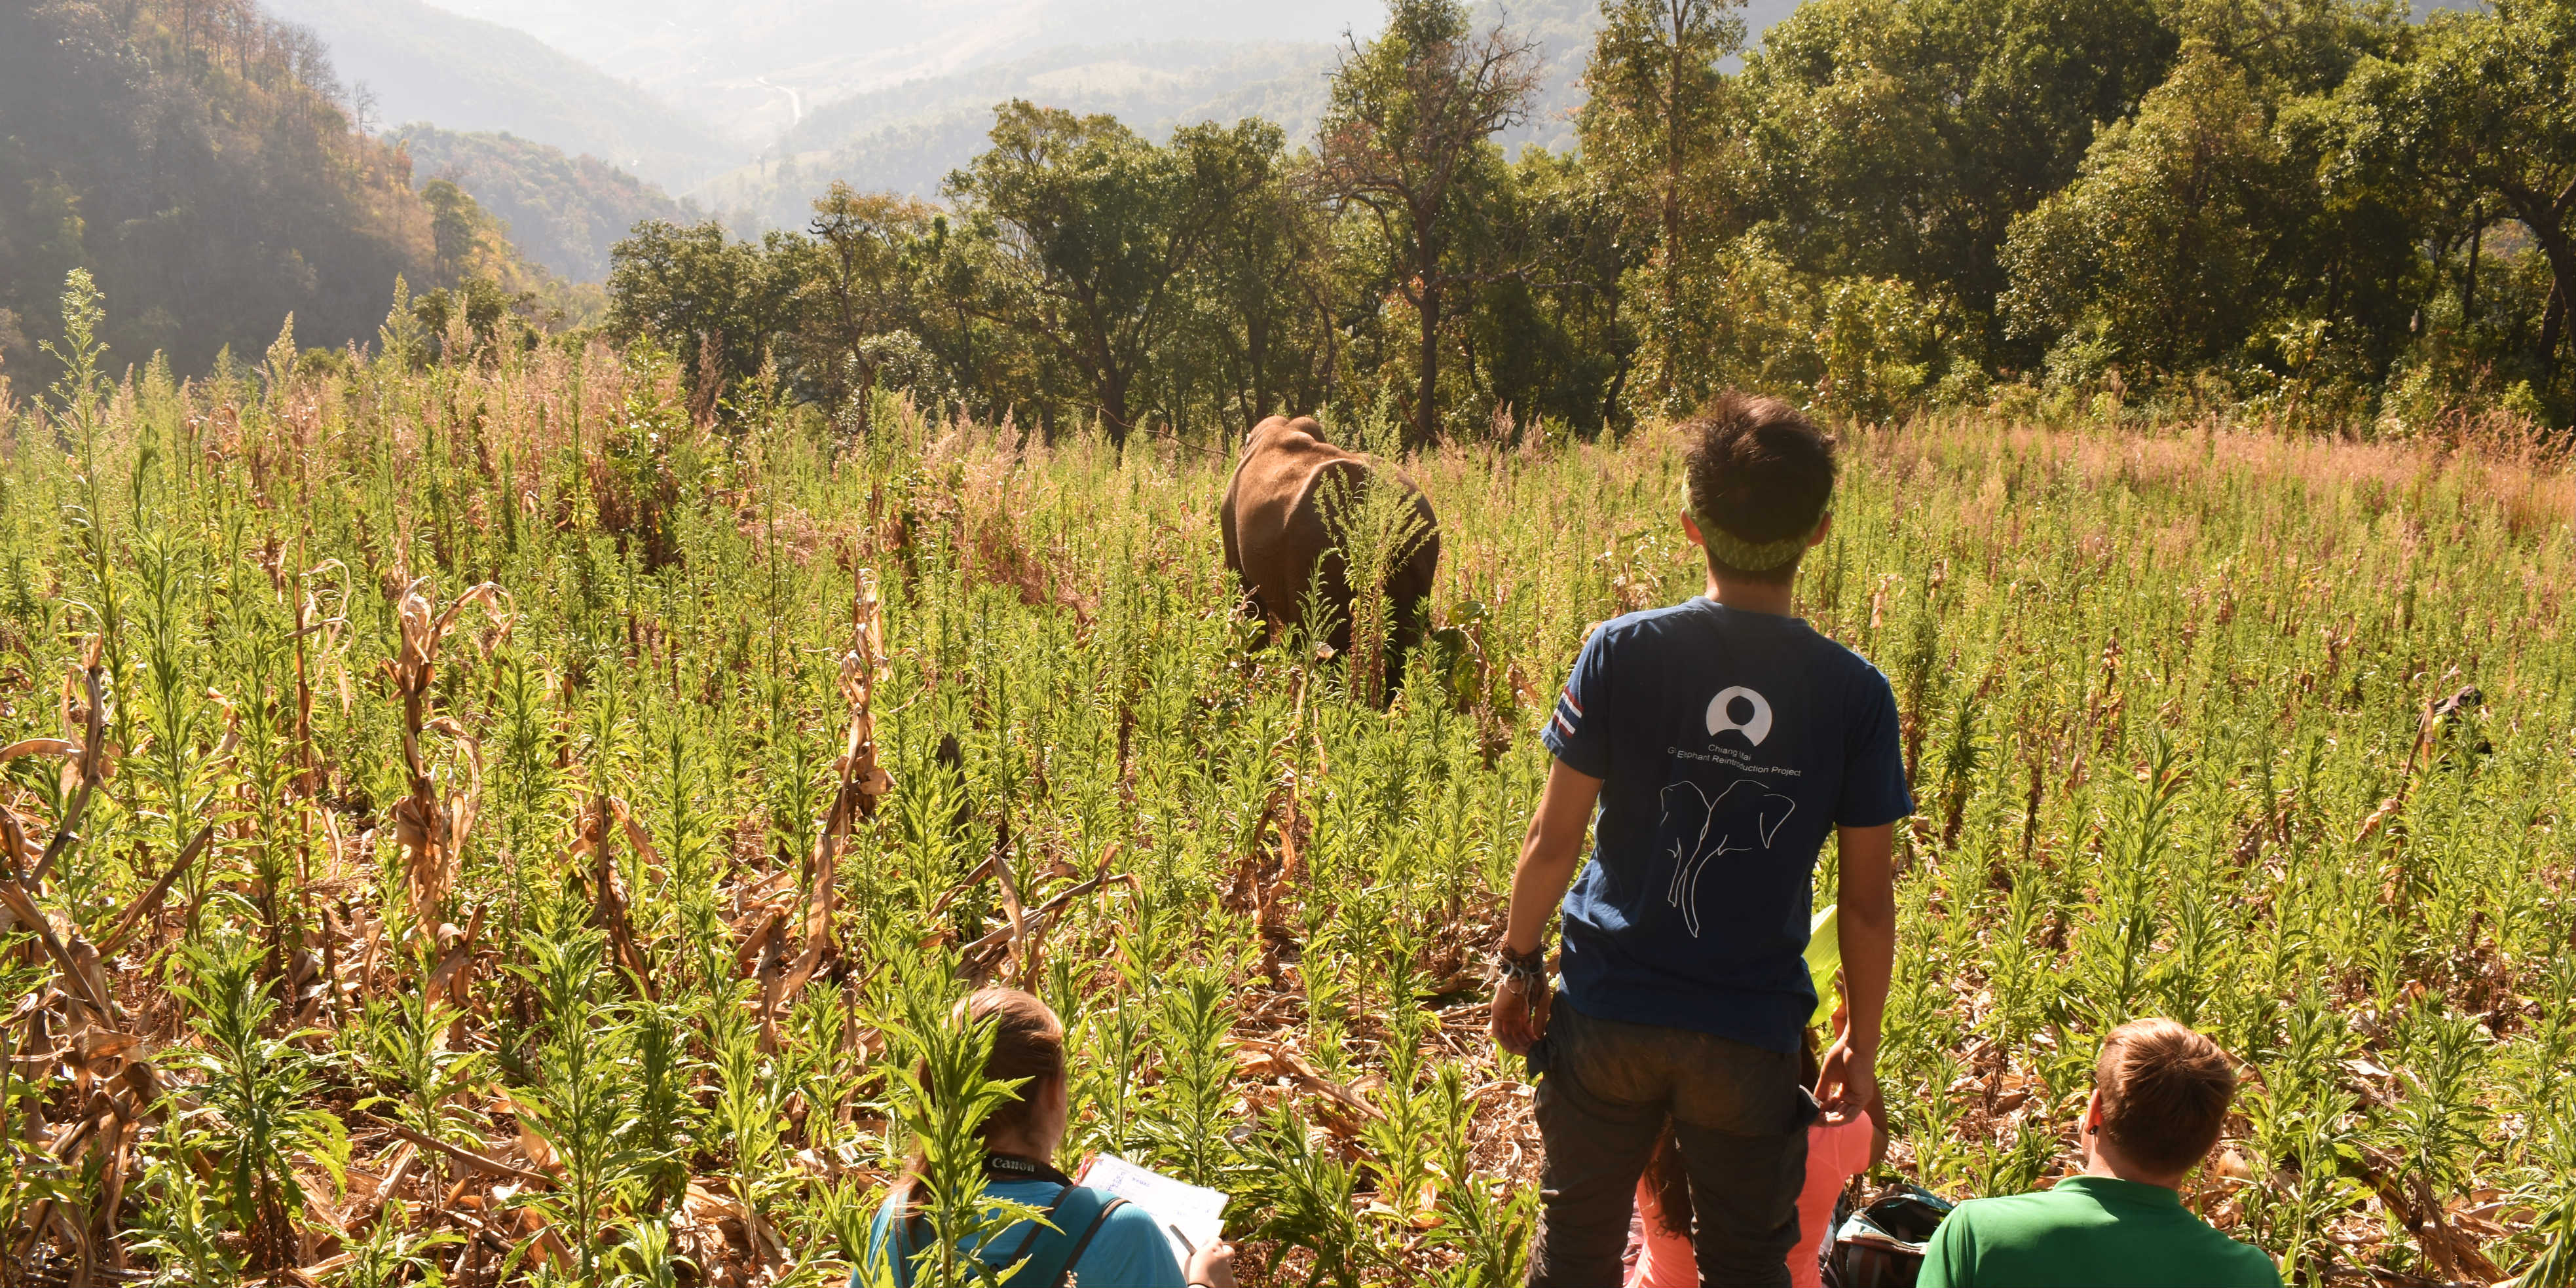 GVI participants monitor elephants in Thailand, as part of efforts to set up alternative elephant tourism.